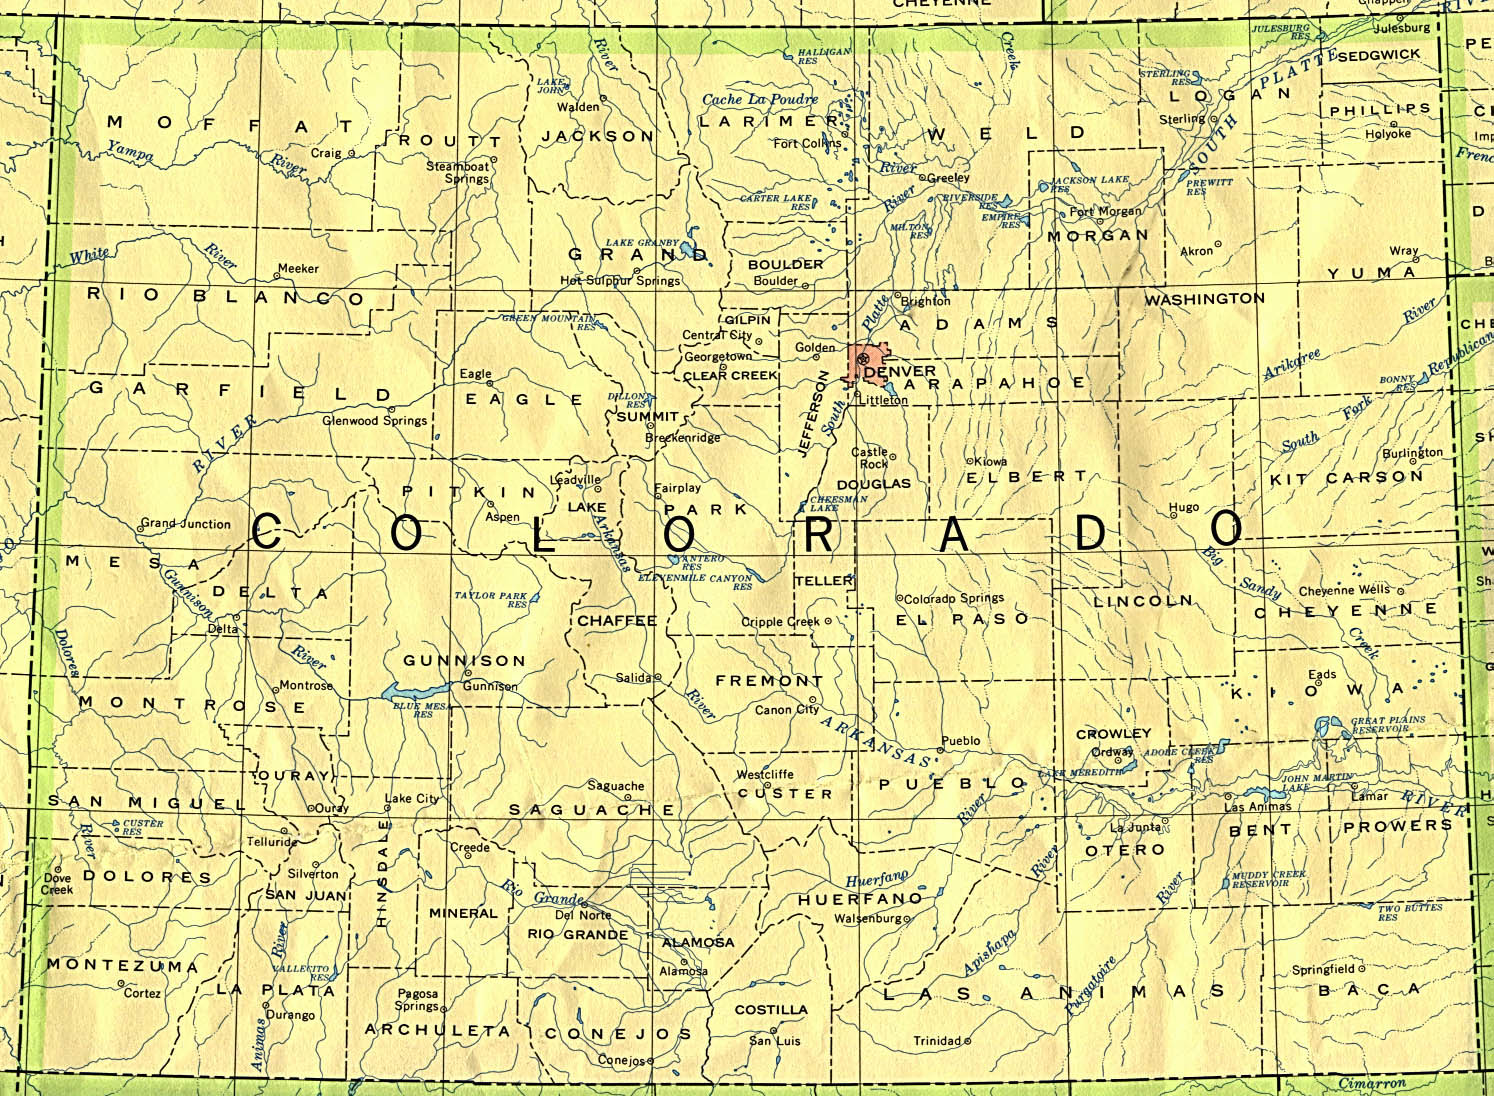 Southern Colorado Map Colorado Maps   Perry Castañeda Map Collection   UT Library Online Southern Colorado Map